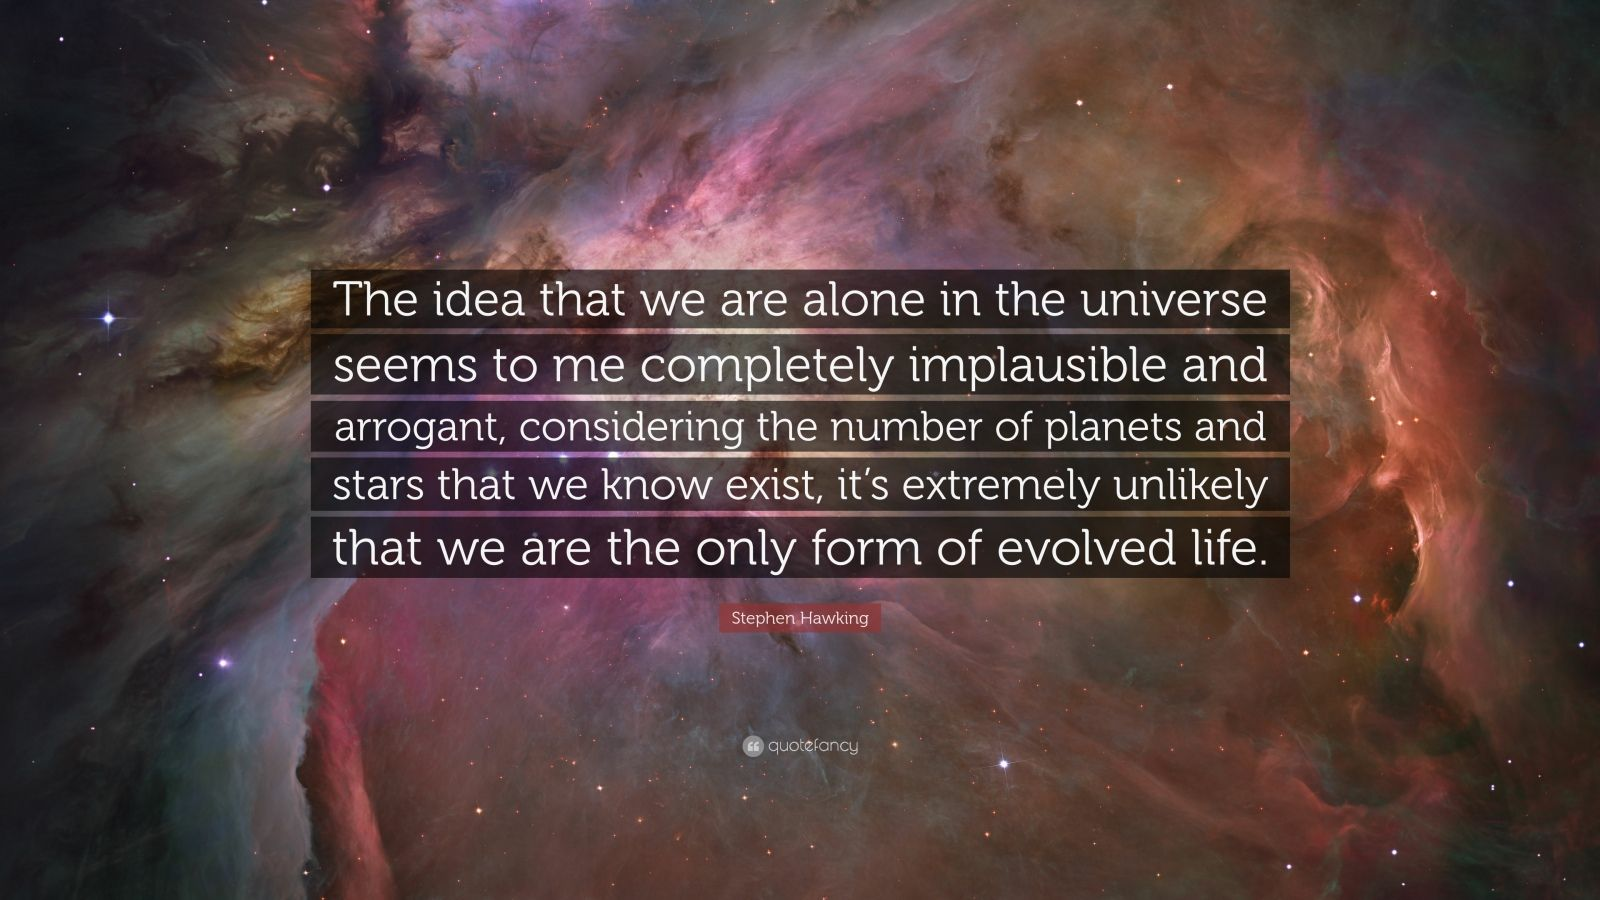 """Stephen Hawking Quote: """"The idea that we are alone in the universe seems to me completely implausible and arrogant, considering the number of planets and stars that we know exist, it's extremely unlikely that we are the only form of evolved life."""""""